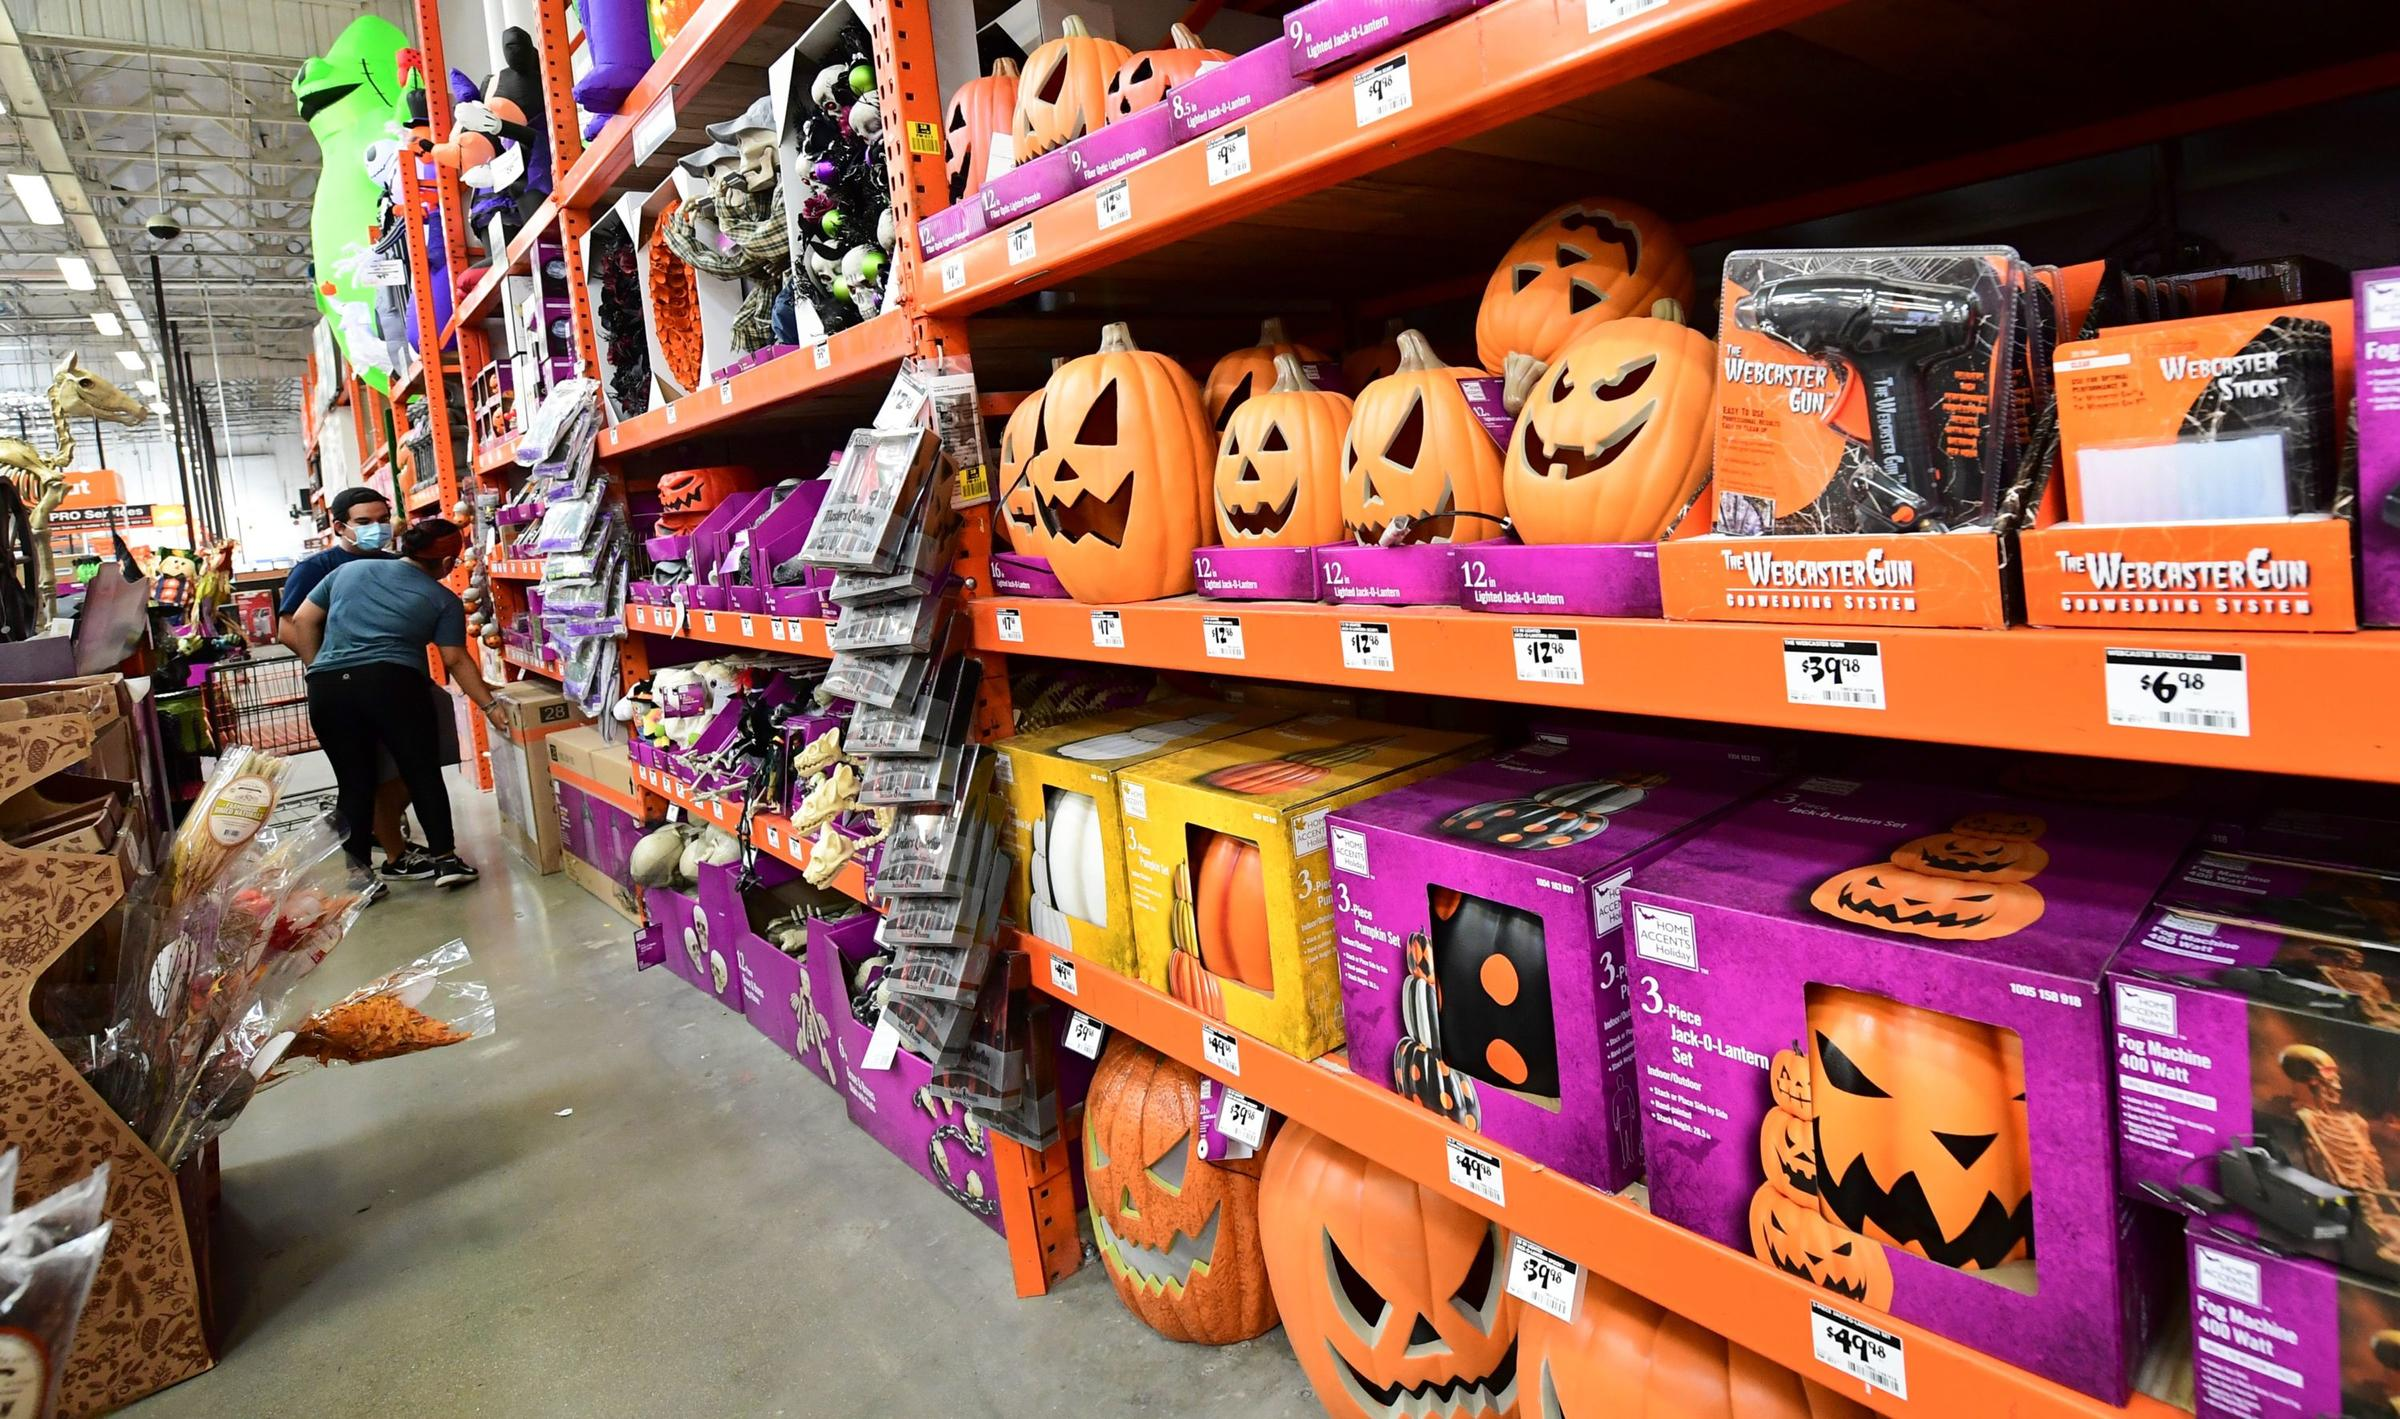 Alhambra Halloween 2020 Halloween 2020: Tips To Stay Safe But Have Fun | NPR Illinois